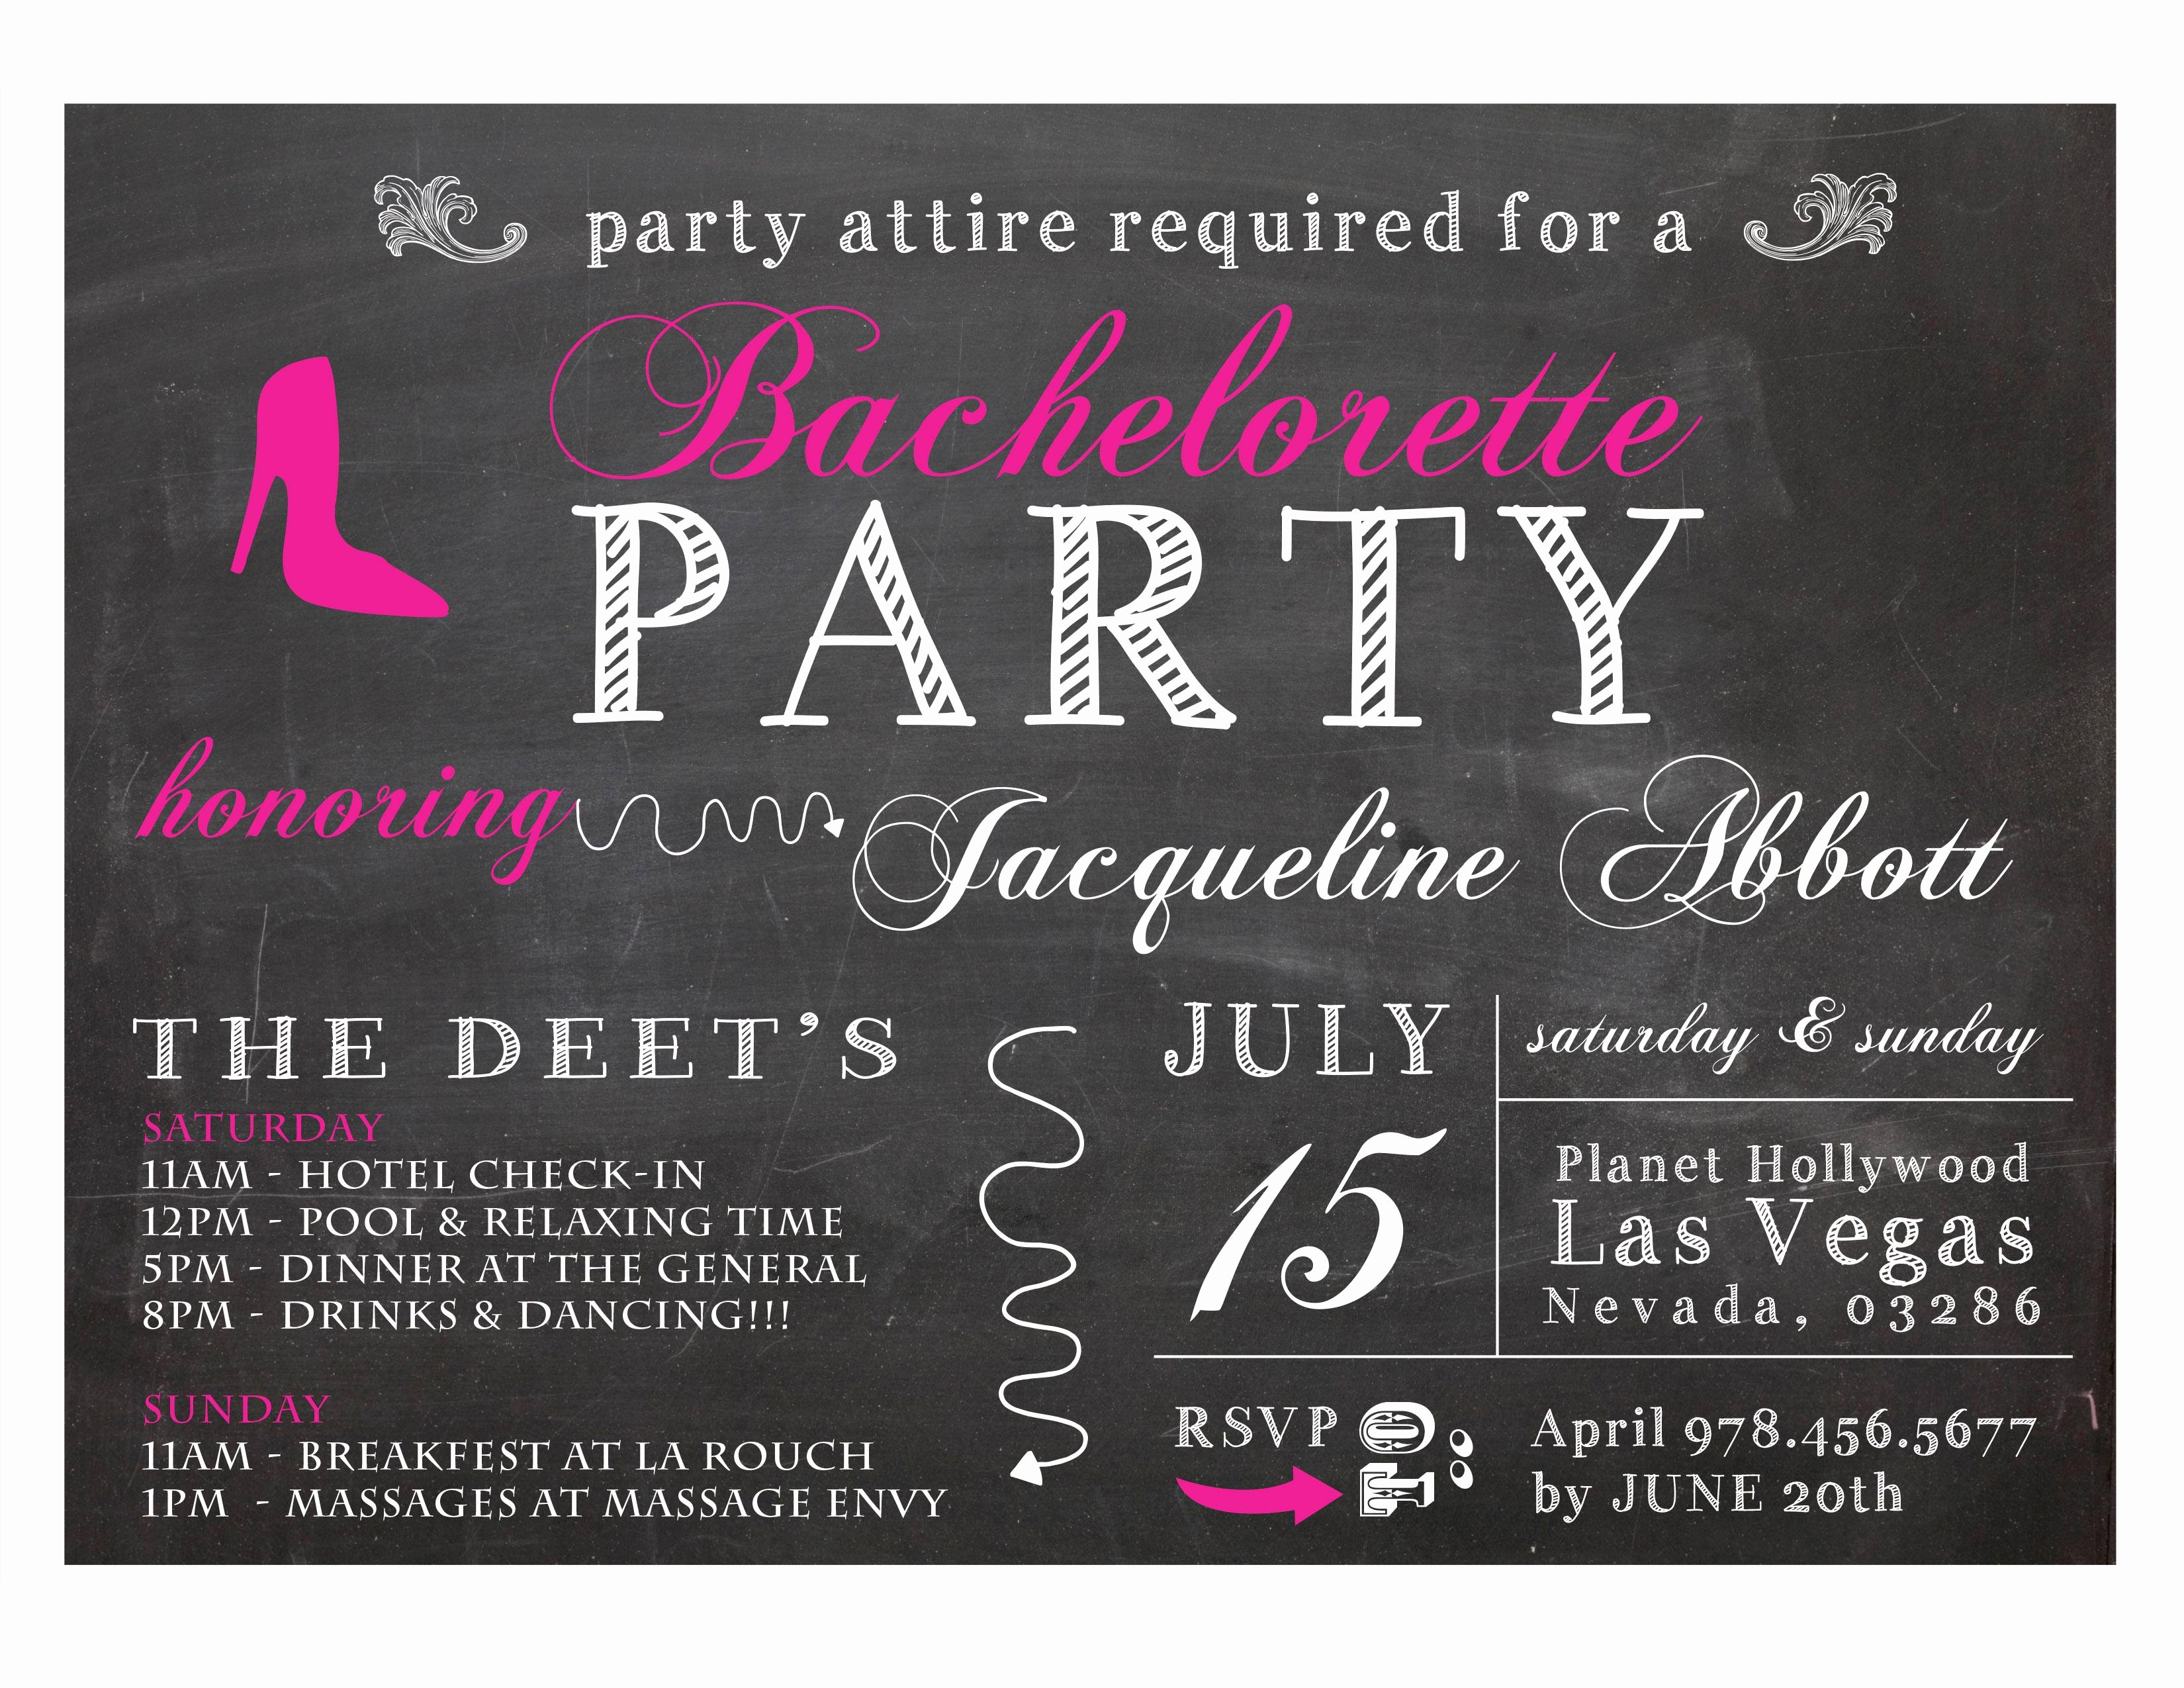 Bachelor Party Invite Template Inspirational Bachelor Party Invitations